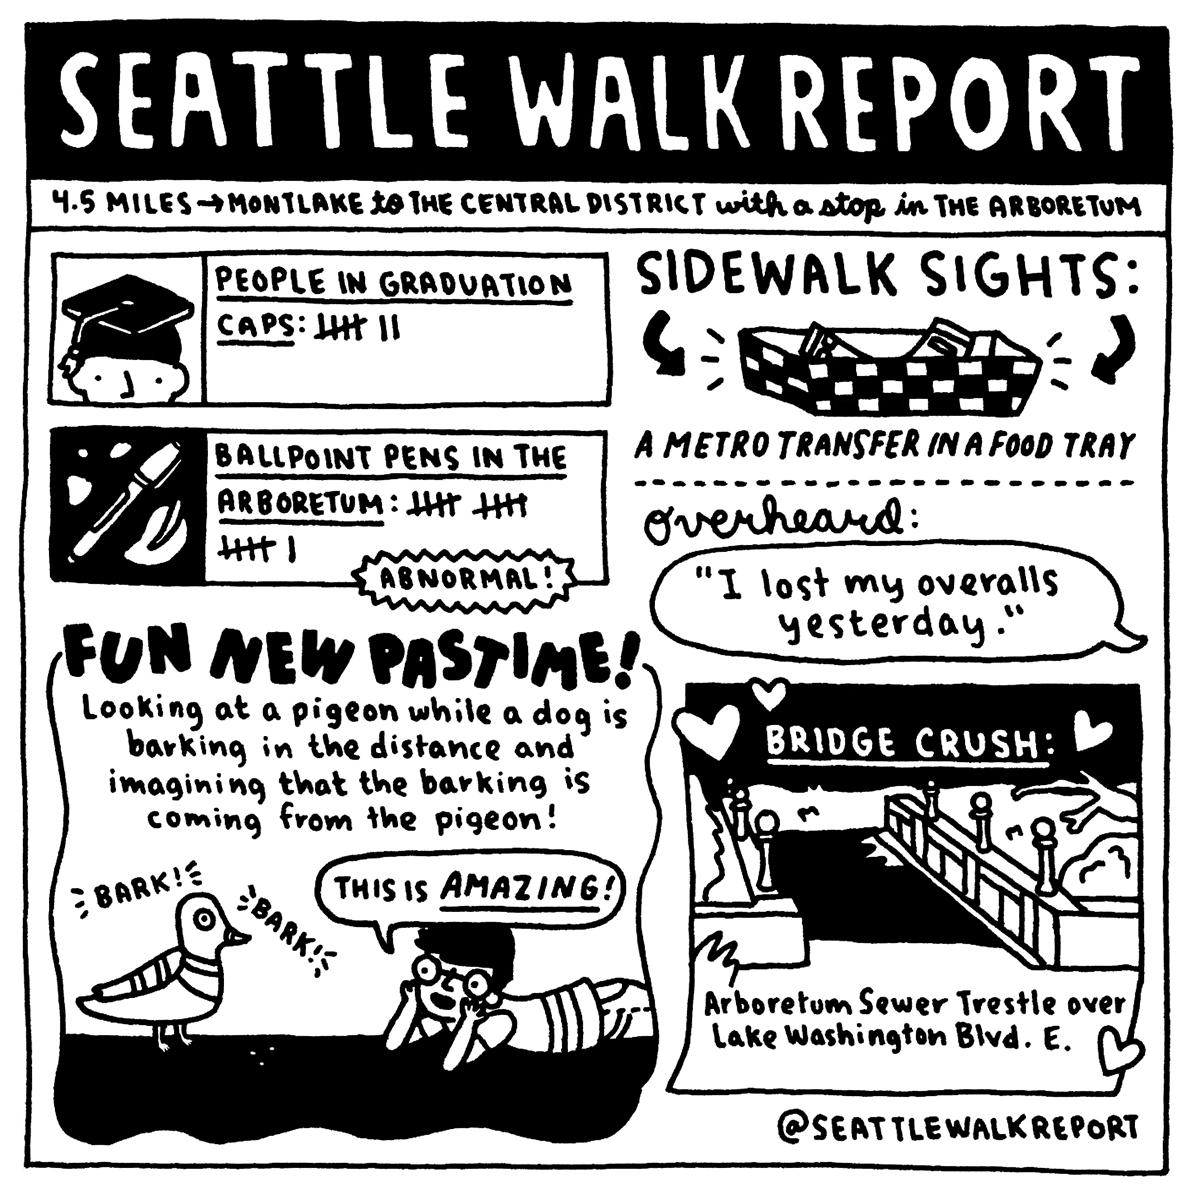 Montlake to the Central District. (Image: @seattlewalkreport / seattlerefined.com/seattlewalkreport)